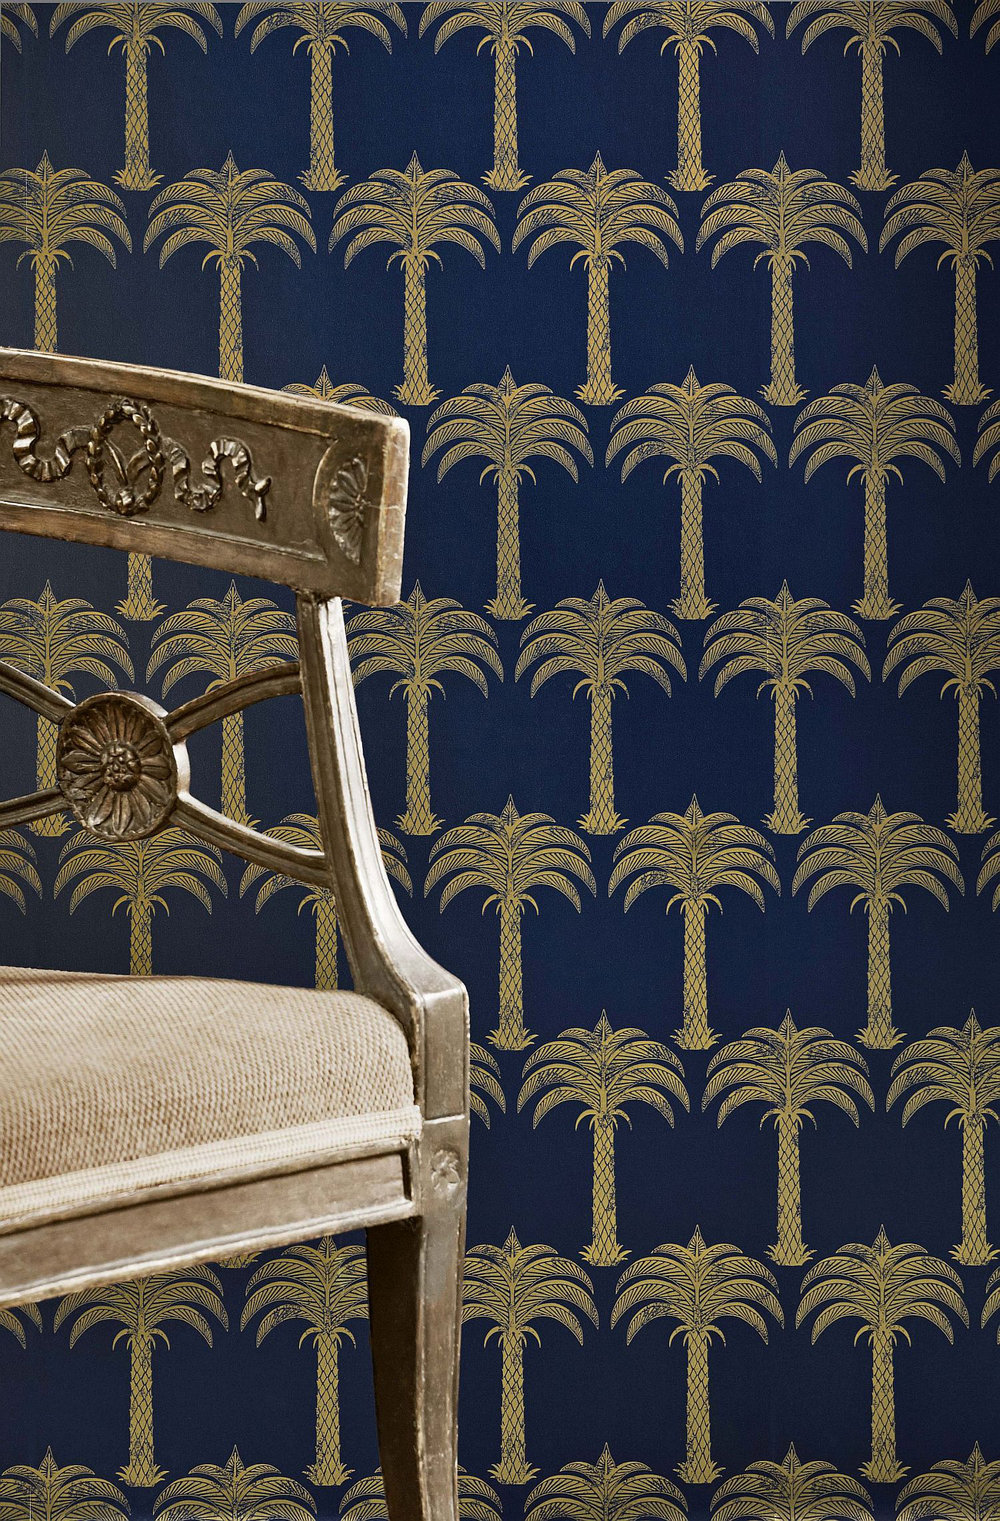 Marrakech Palm Wallpaper - Midnight Blue - by Barneby Gates